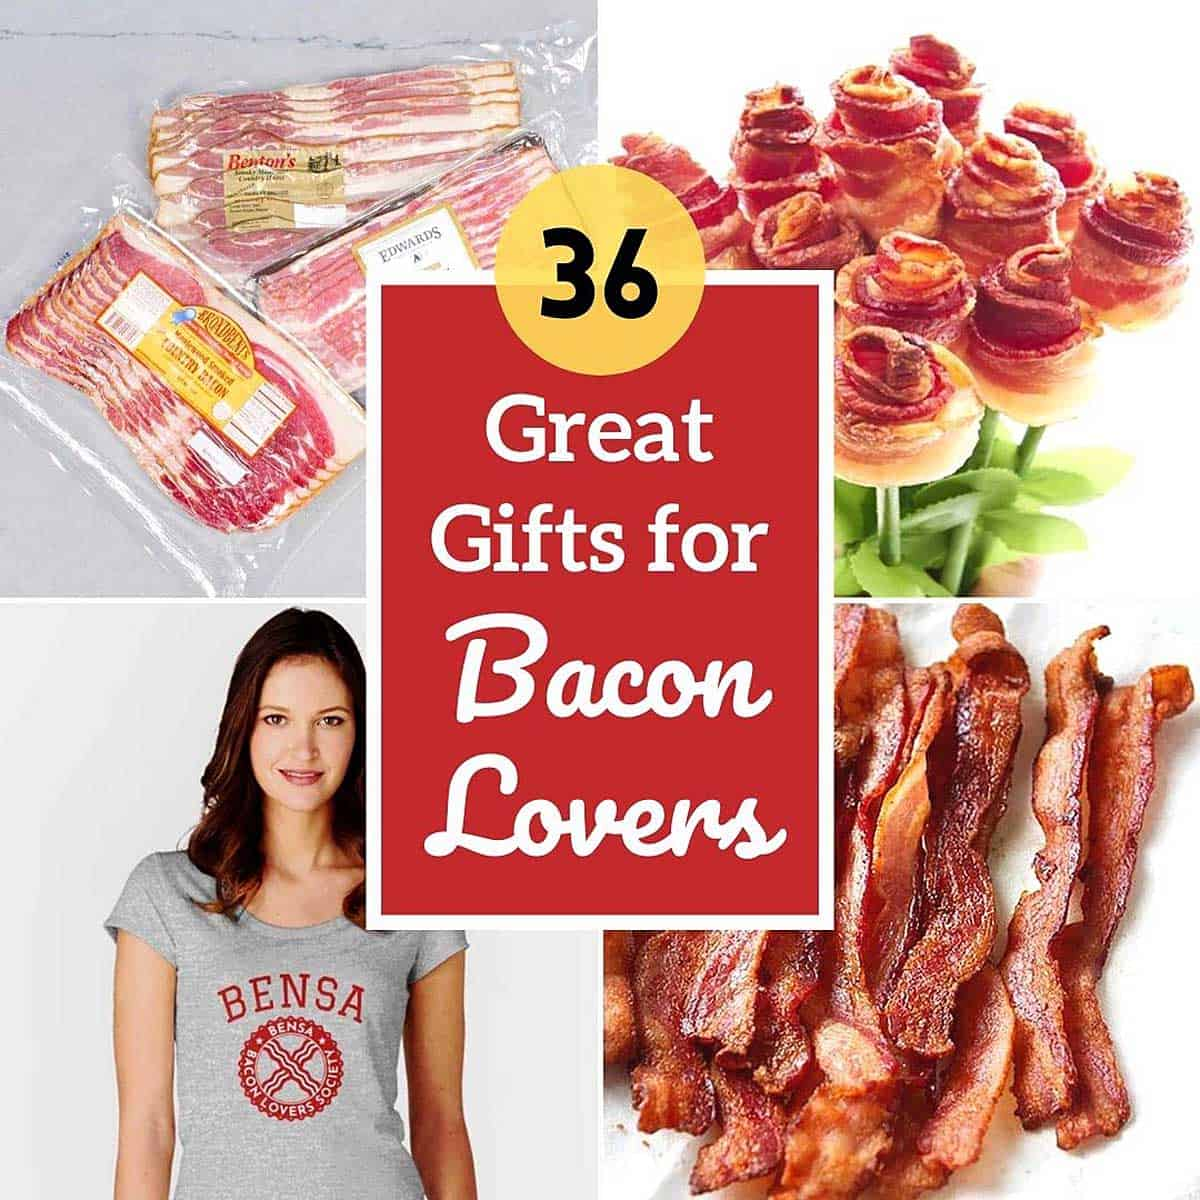 A collage of bacon gifts with text: 36 Great Gifts for Bacon Lovers